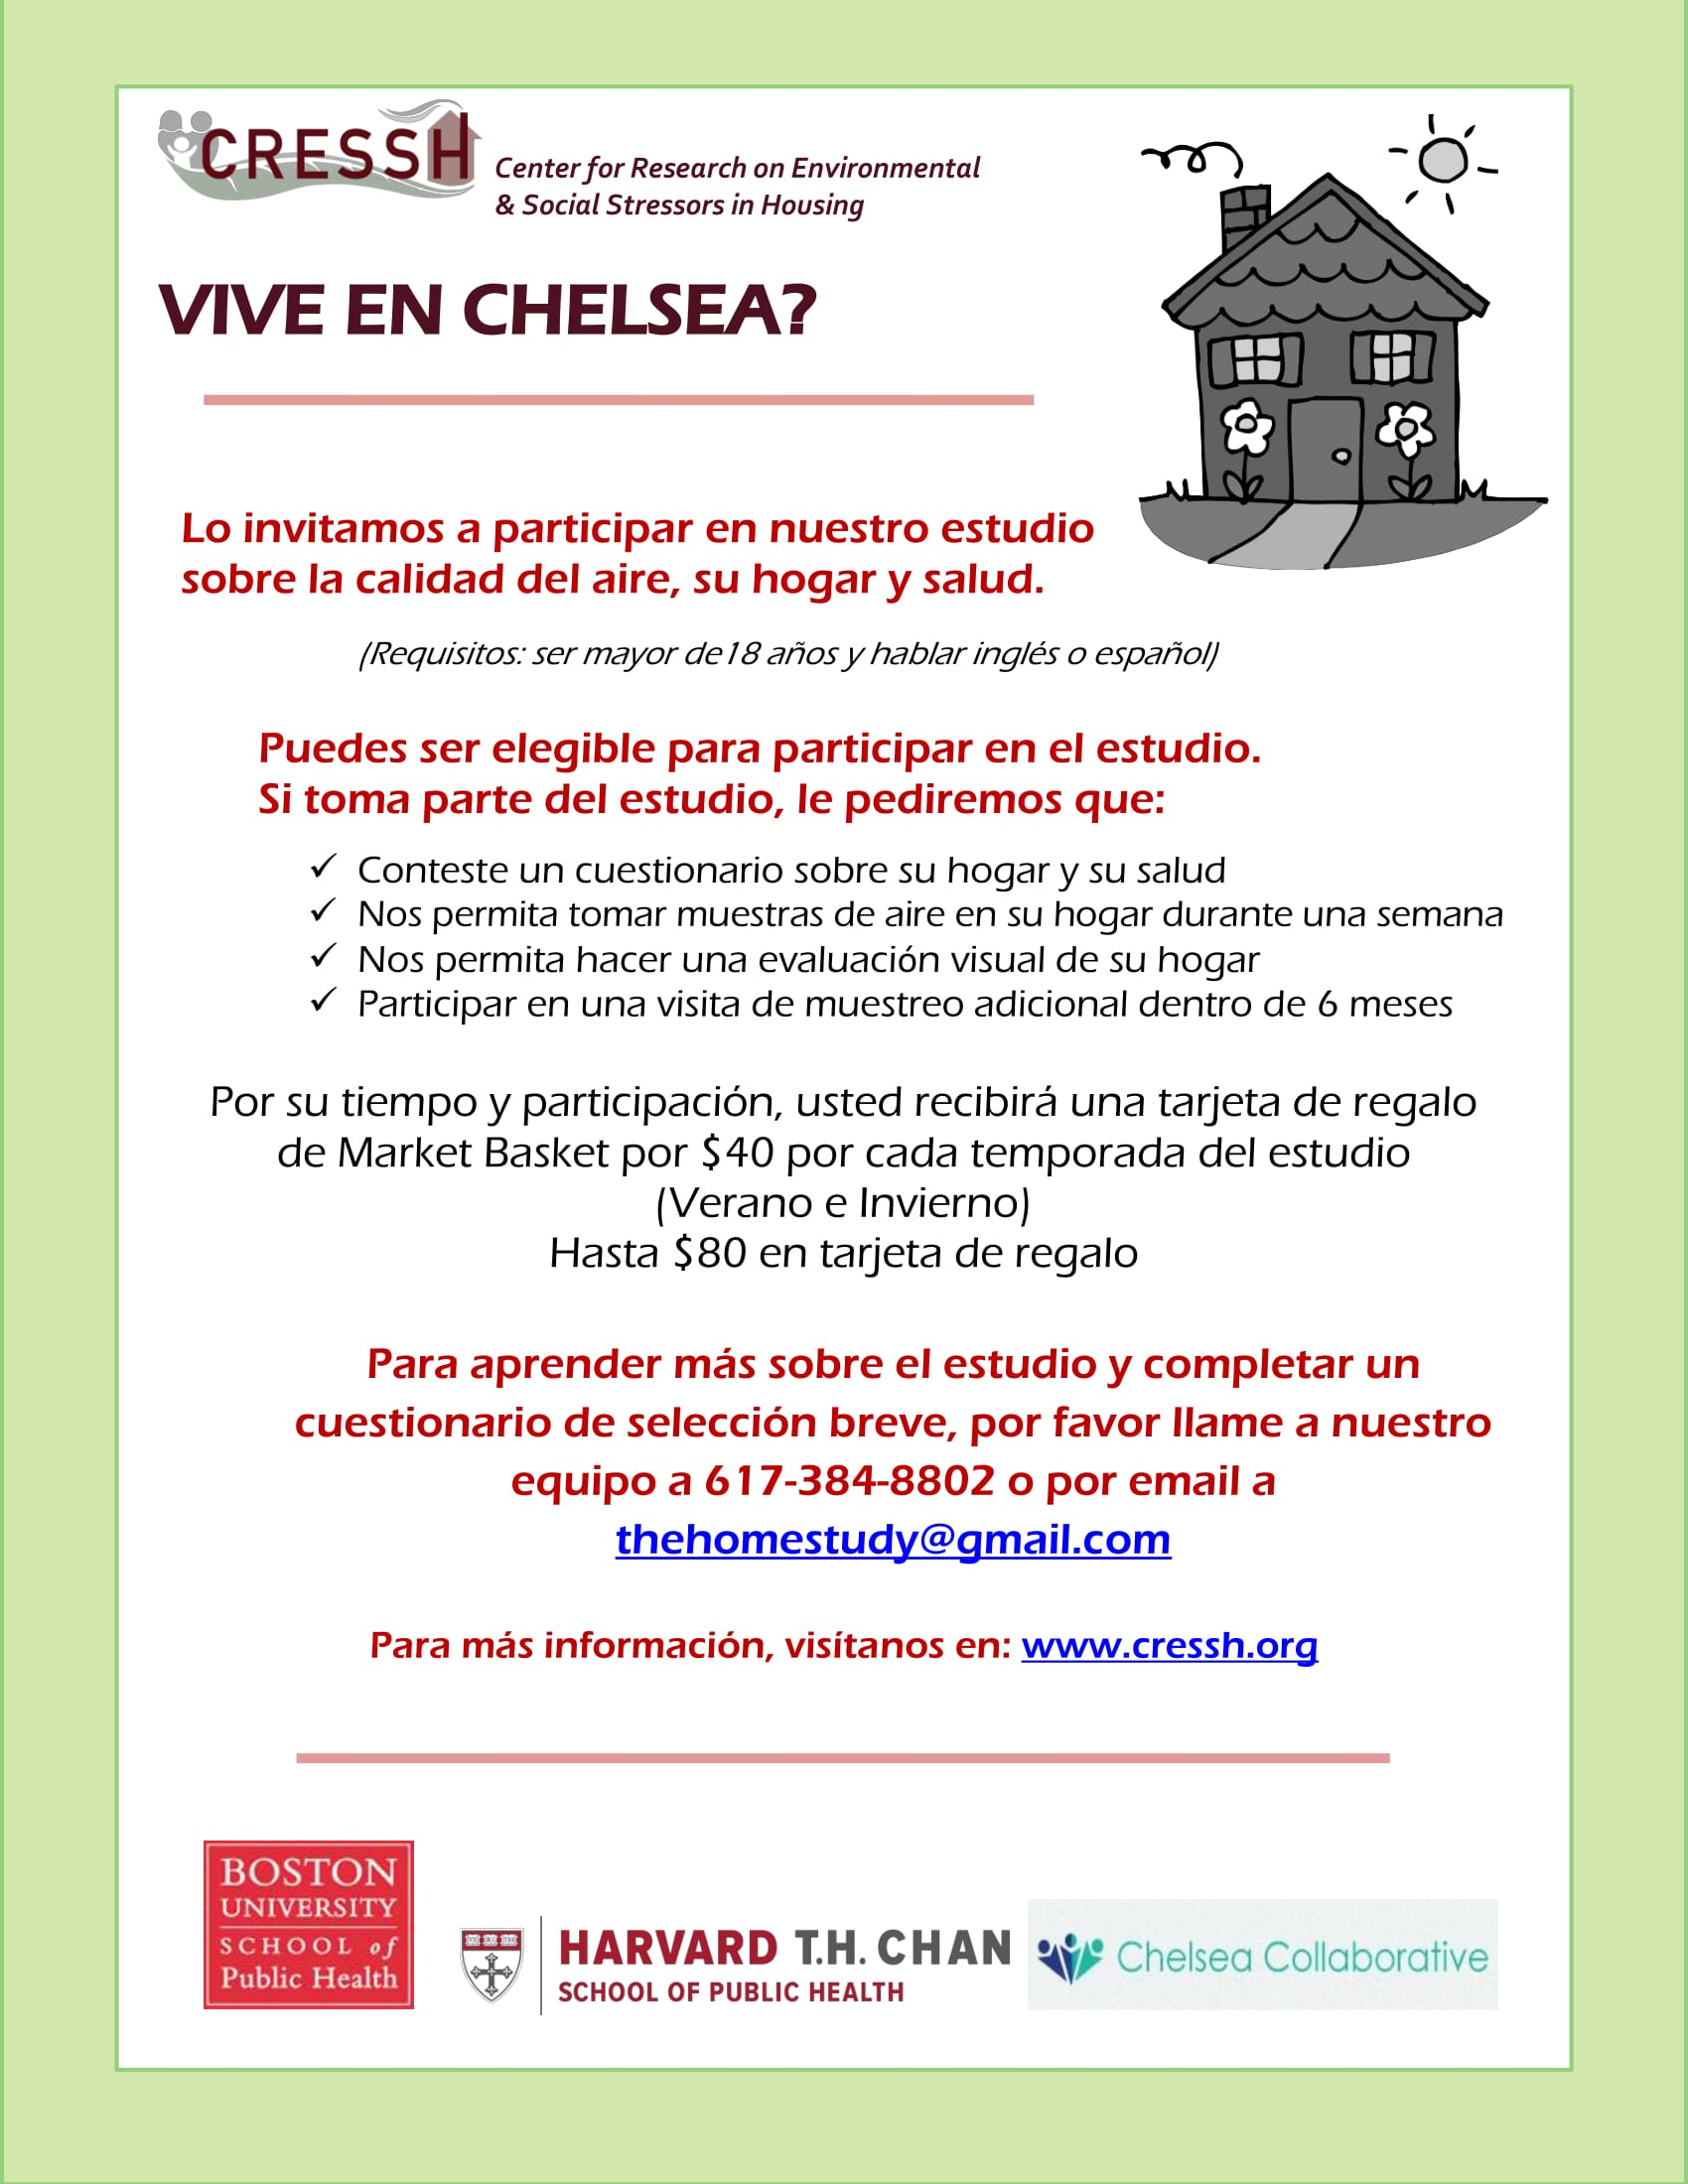 ExposureDisparities_RecruitmentFlyer_Chelsea_Spanish-1